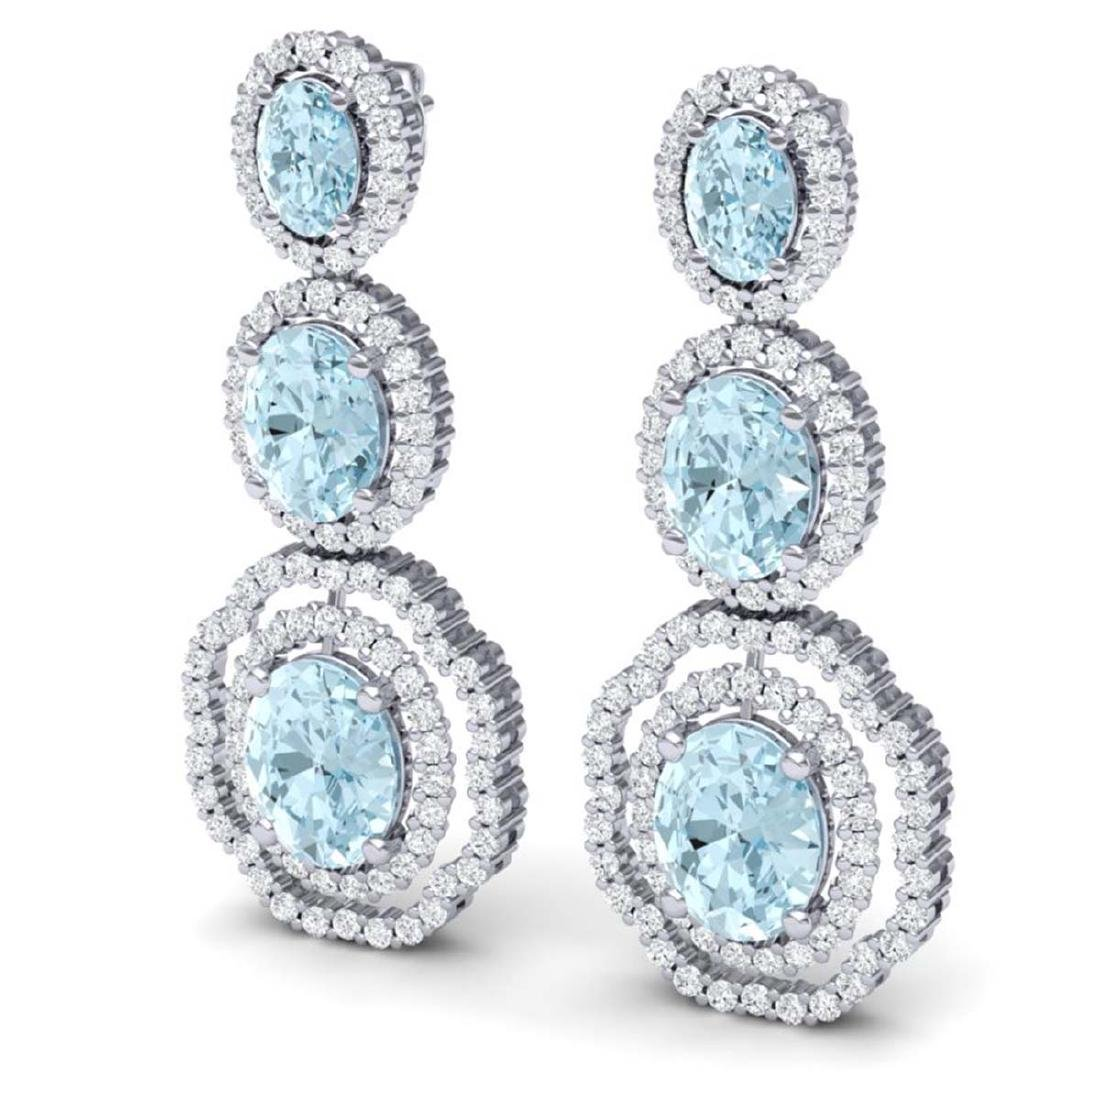 17.46 CTW Royalty Sky Topaz & VS Diamond Earrings 18K - 2